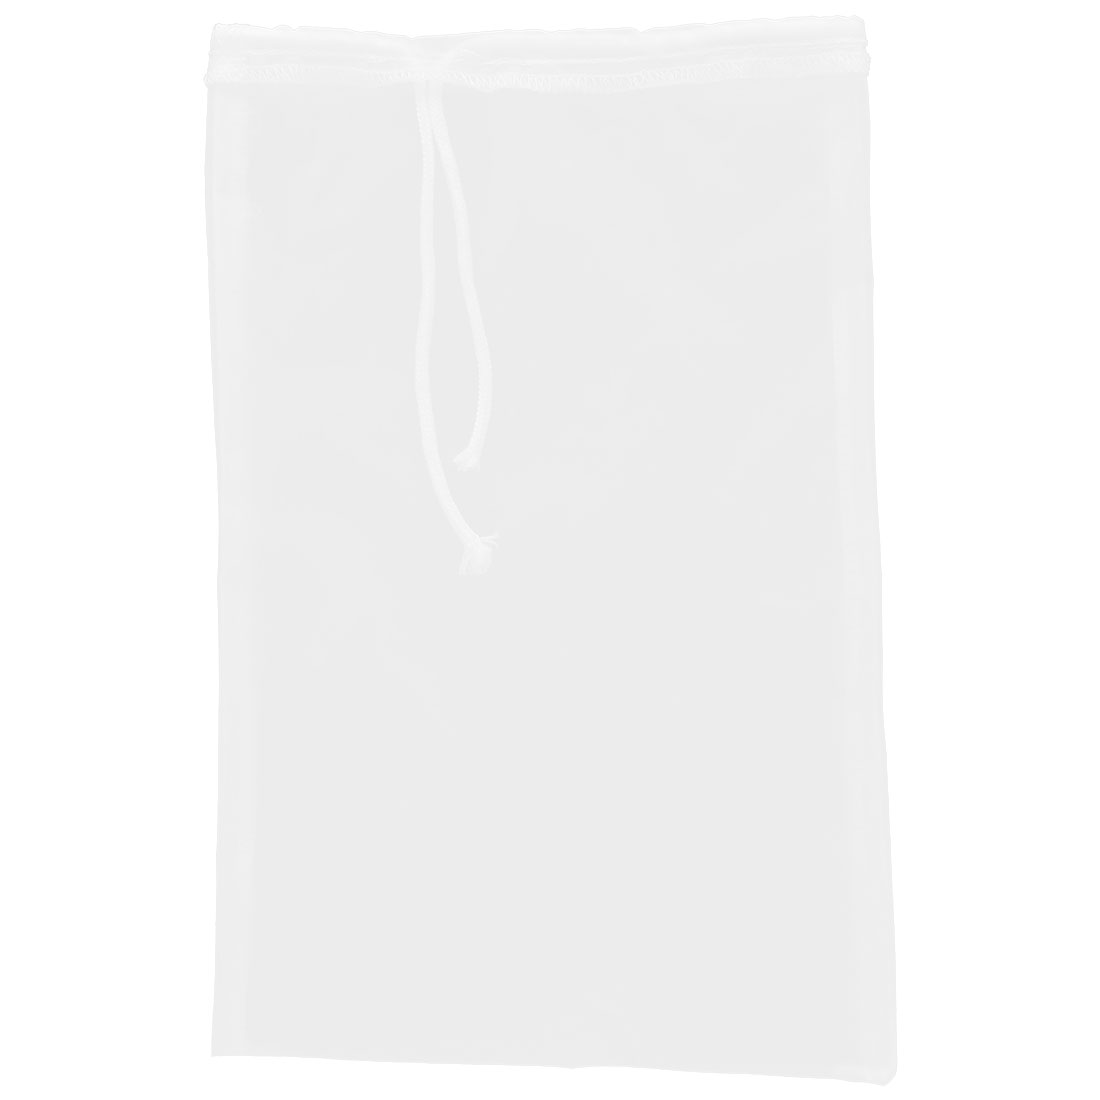 Home Kitchen Herb Spices Soybean Food Mesh Filter Bag White 30cm x 20cm